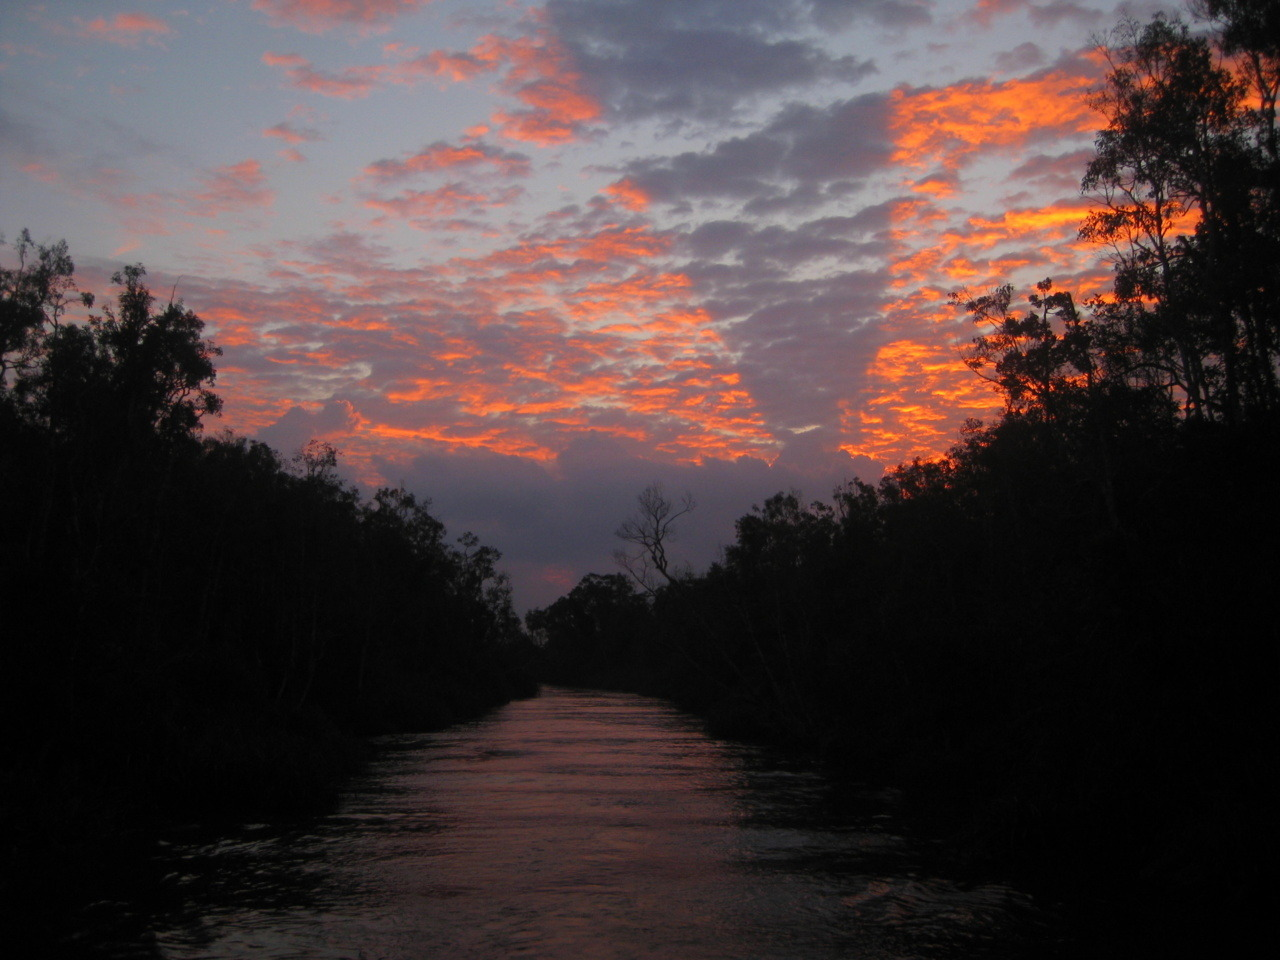 Sunset downriver of Camp Leakey, an orang-utan preserve in Kalimantan, Indonesia.